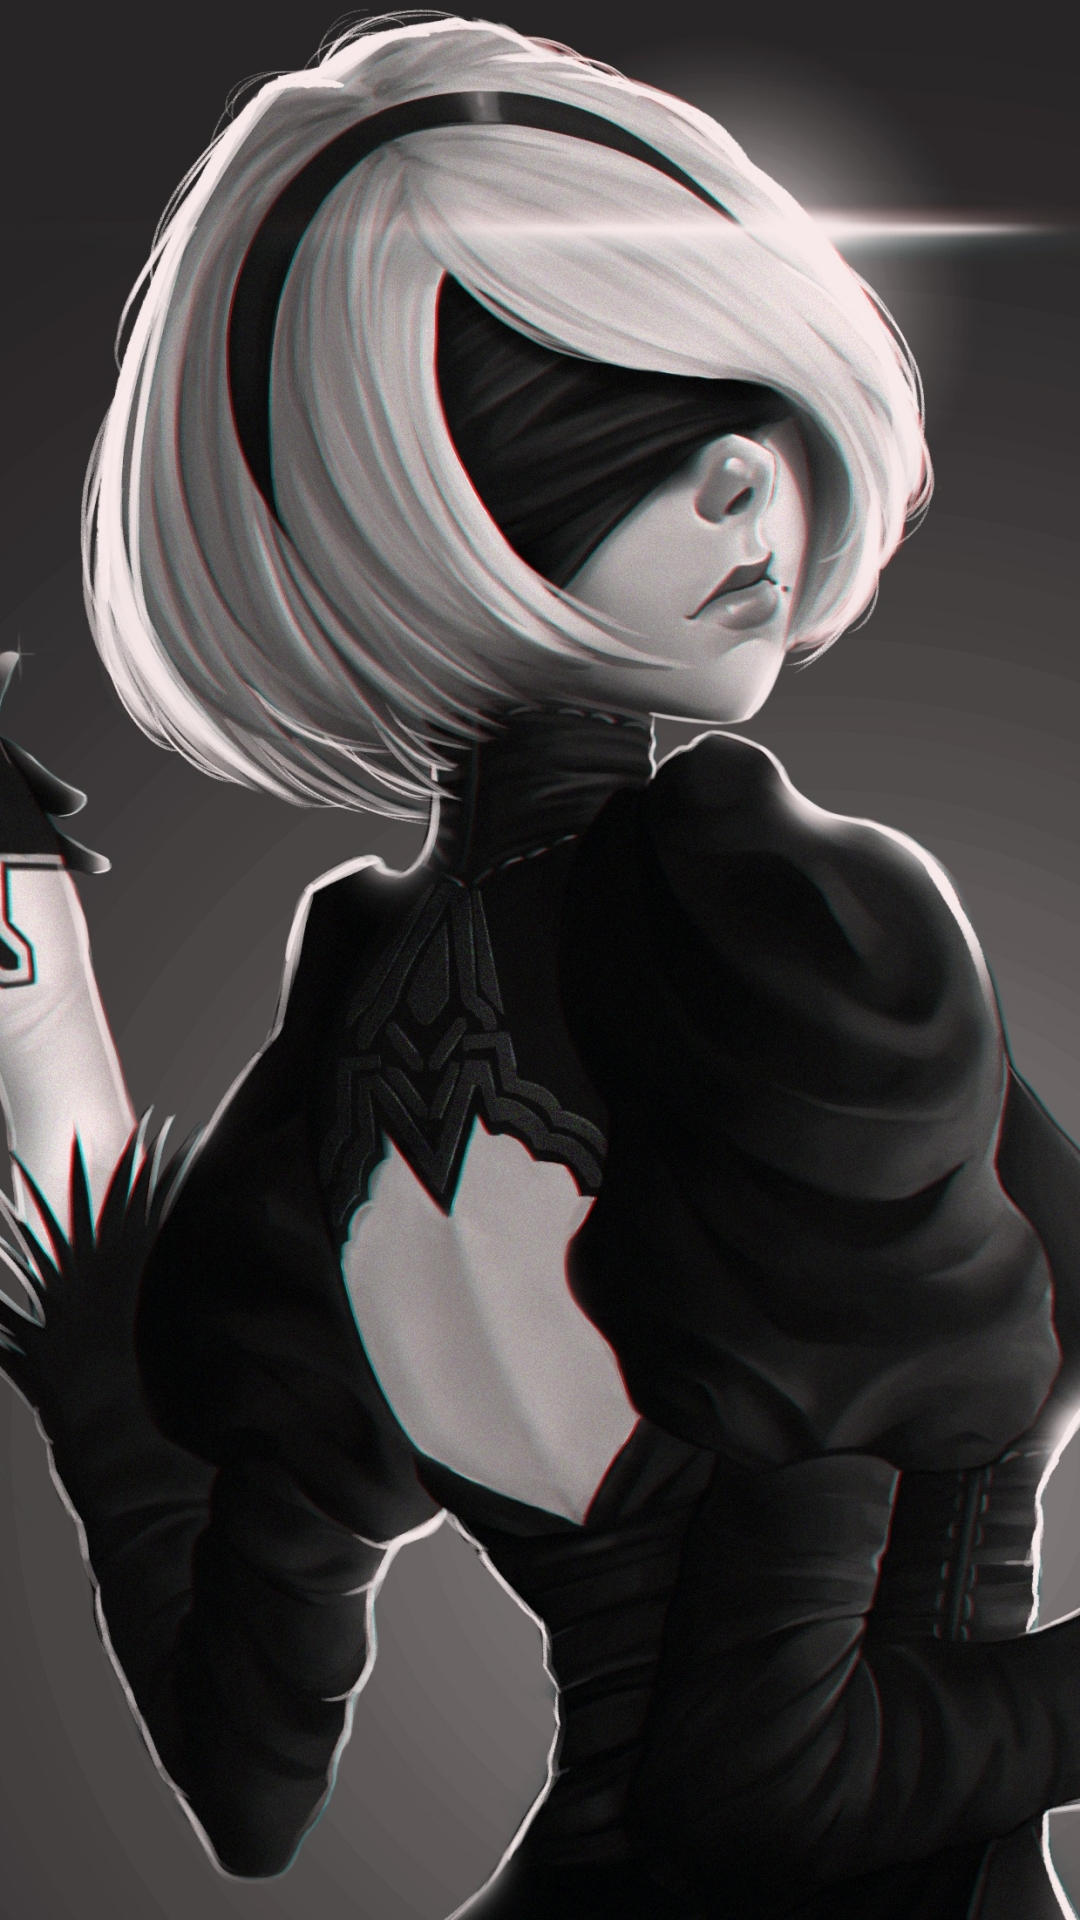 Video Game Nier Automata 1080x1920 Wallpaper Id 671573